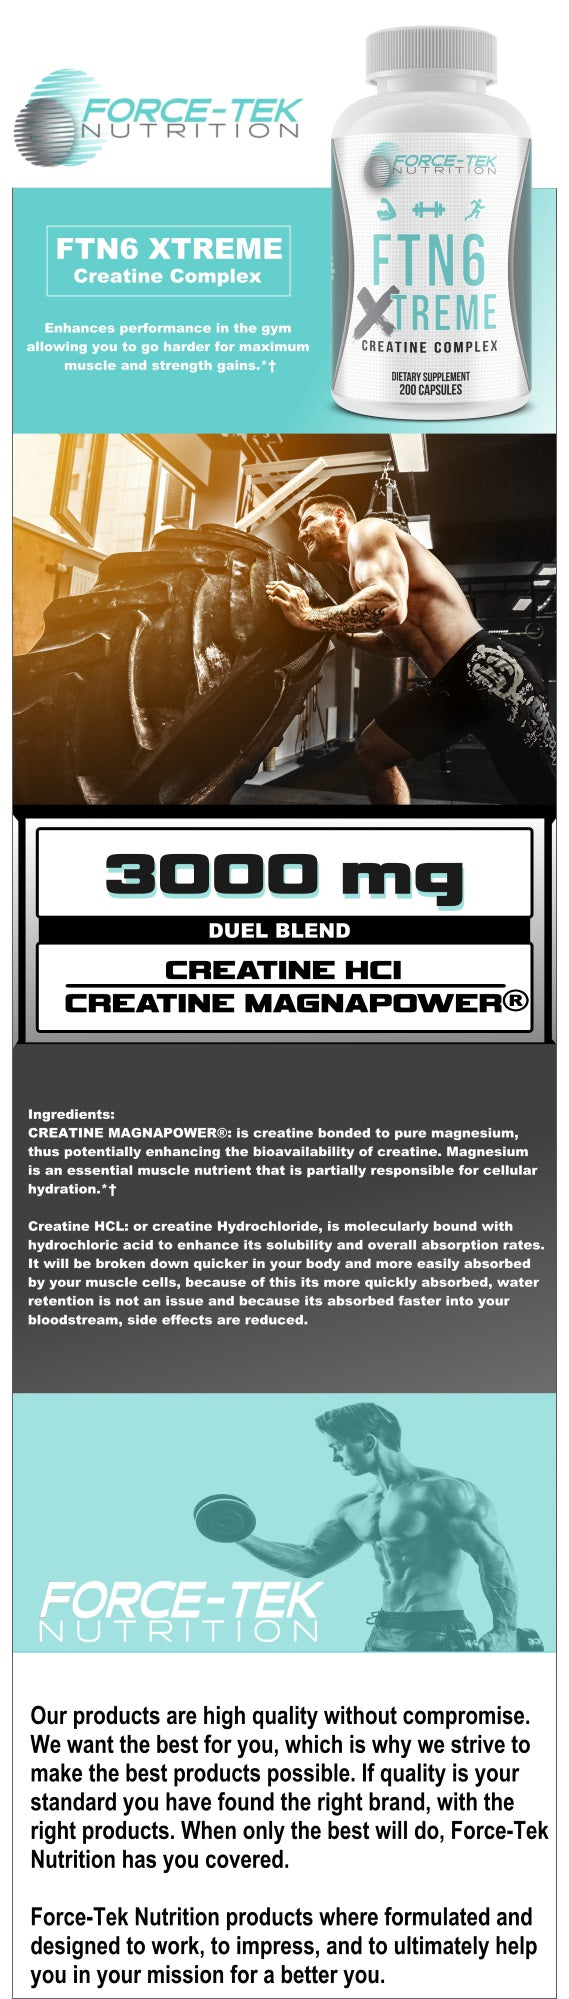 Strongest Creatine Supplement